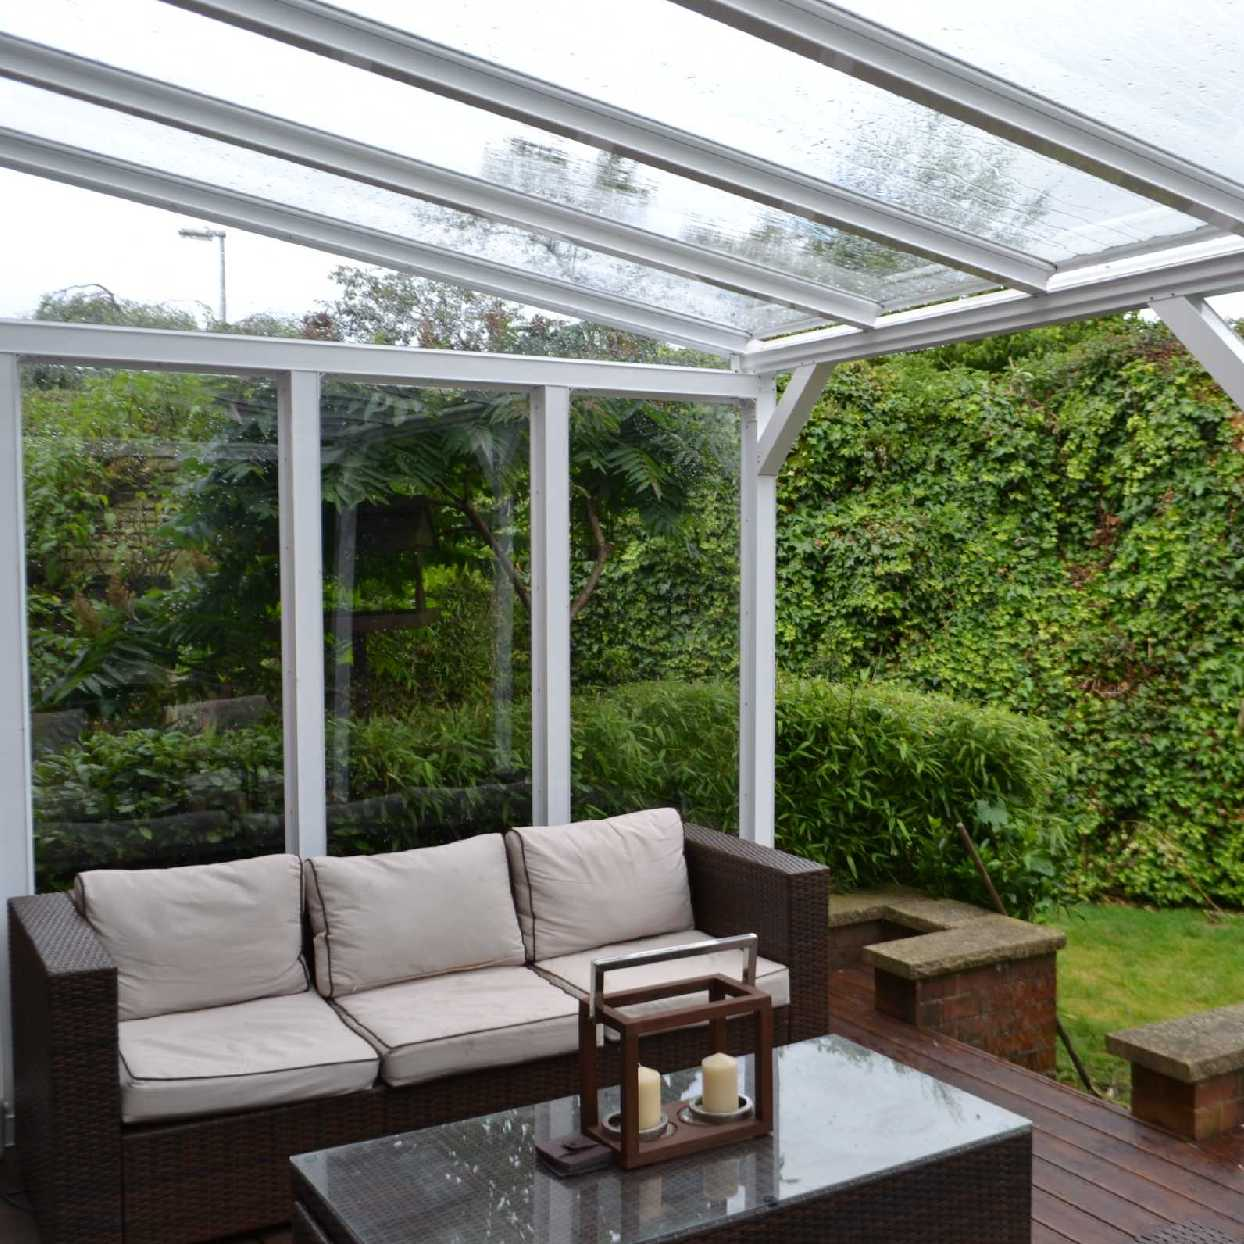 Great selection of Omega Smart White Lean-To Canopy with 16mm Polycarbonate Glazing - 11.6m (W) x 2.5m (P), (5) Supporting Posts